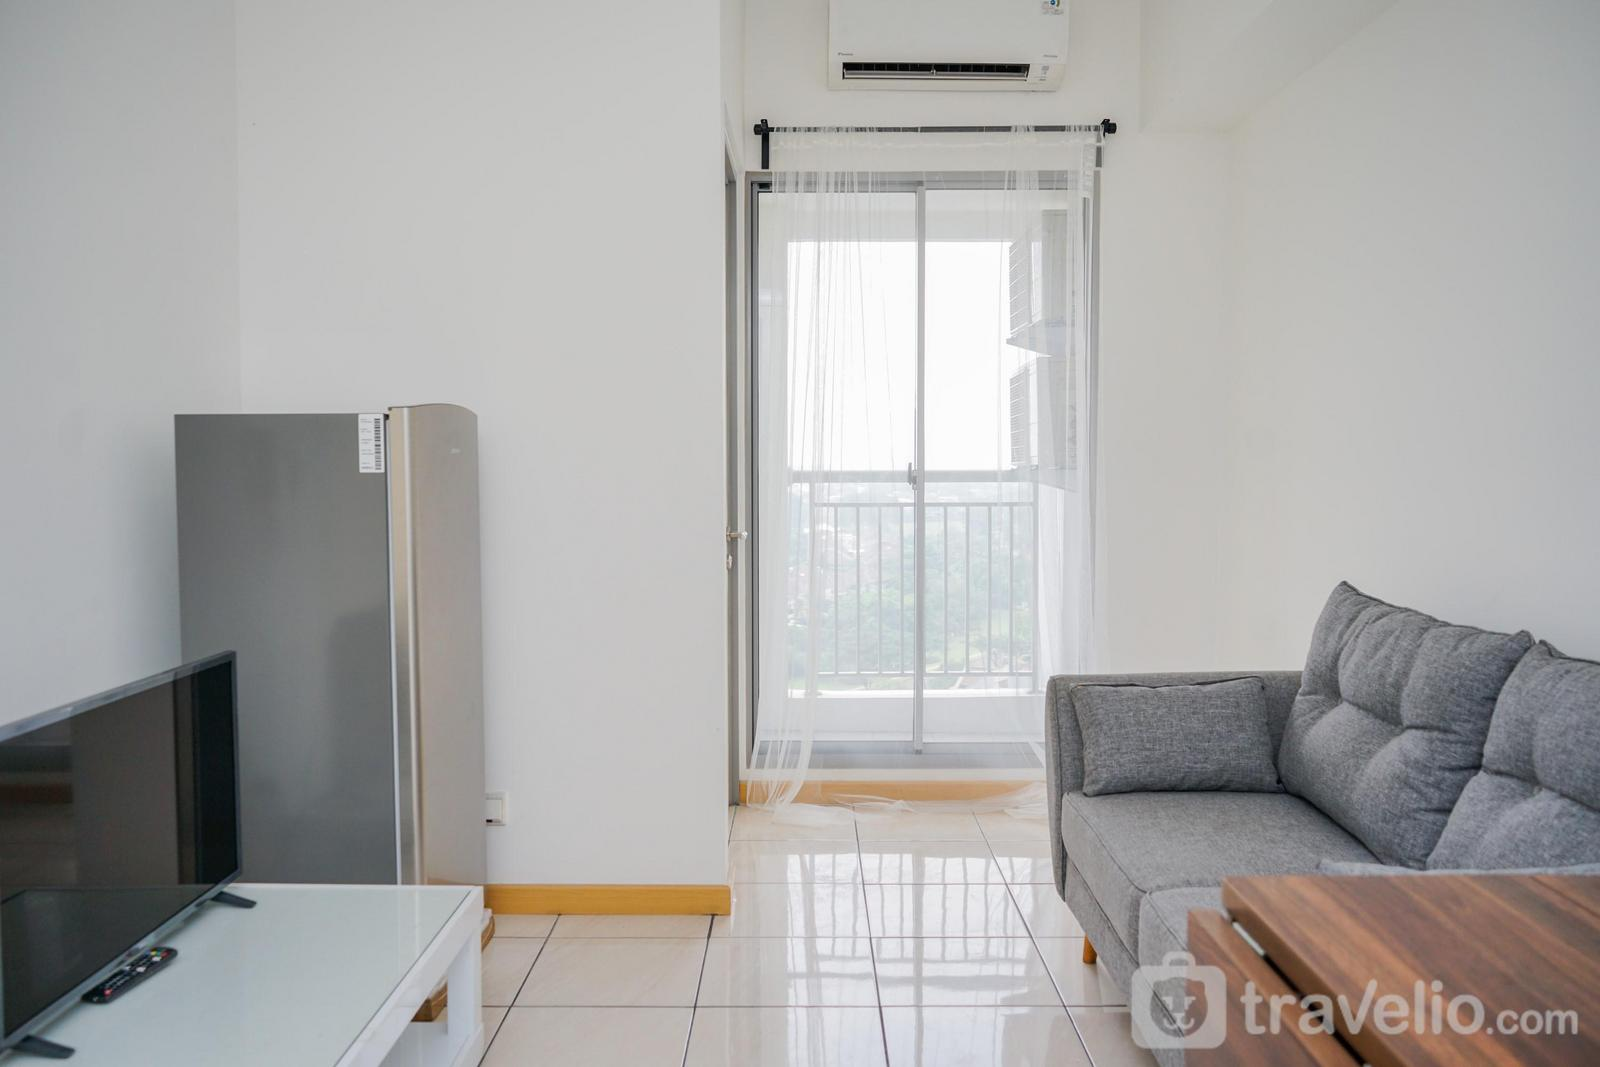 Apartemen M-Town Residence - New Furnished 2BR Apartment at Serpong M-Town Residence By Travelio